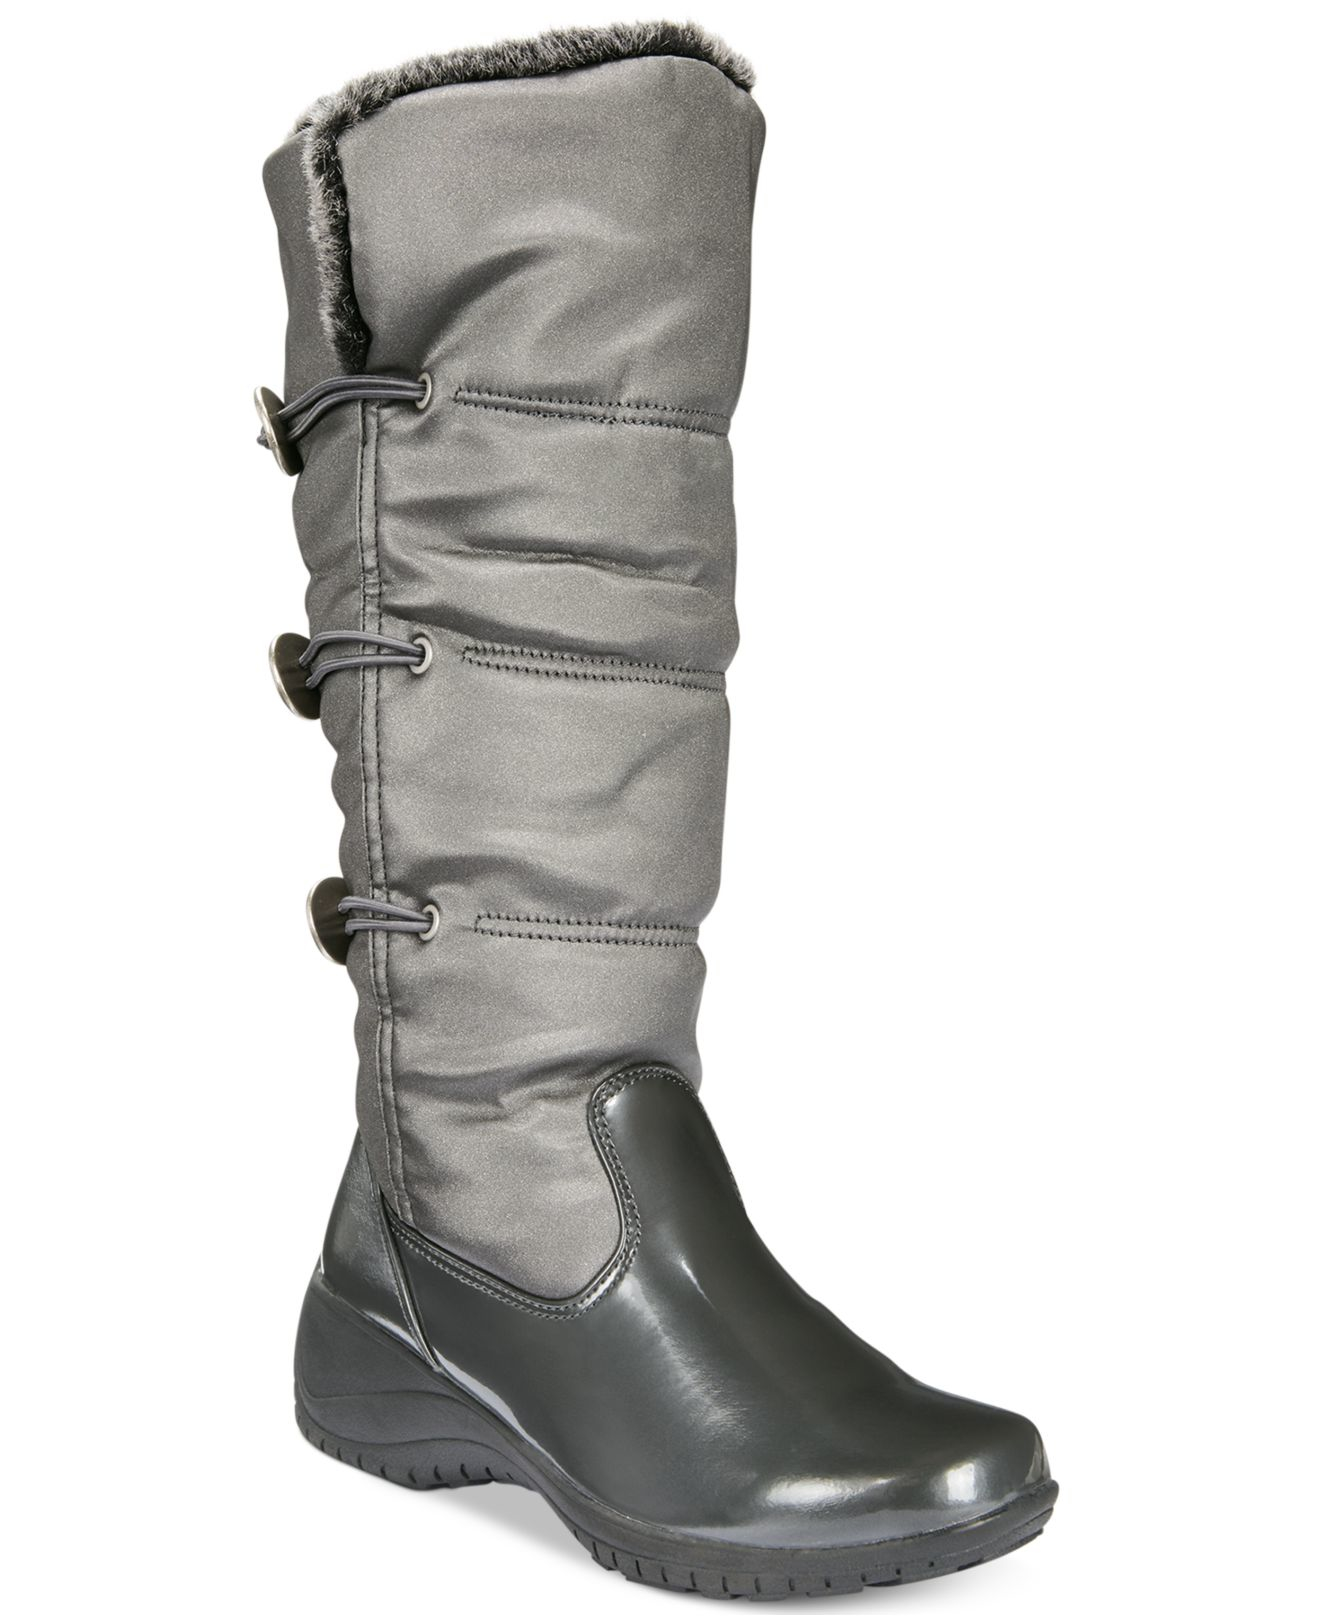 khombu abigail cold weather wedge boots in silver pewter